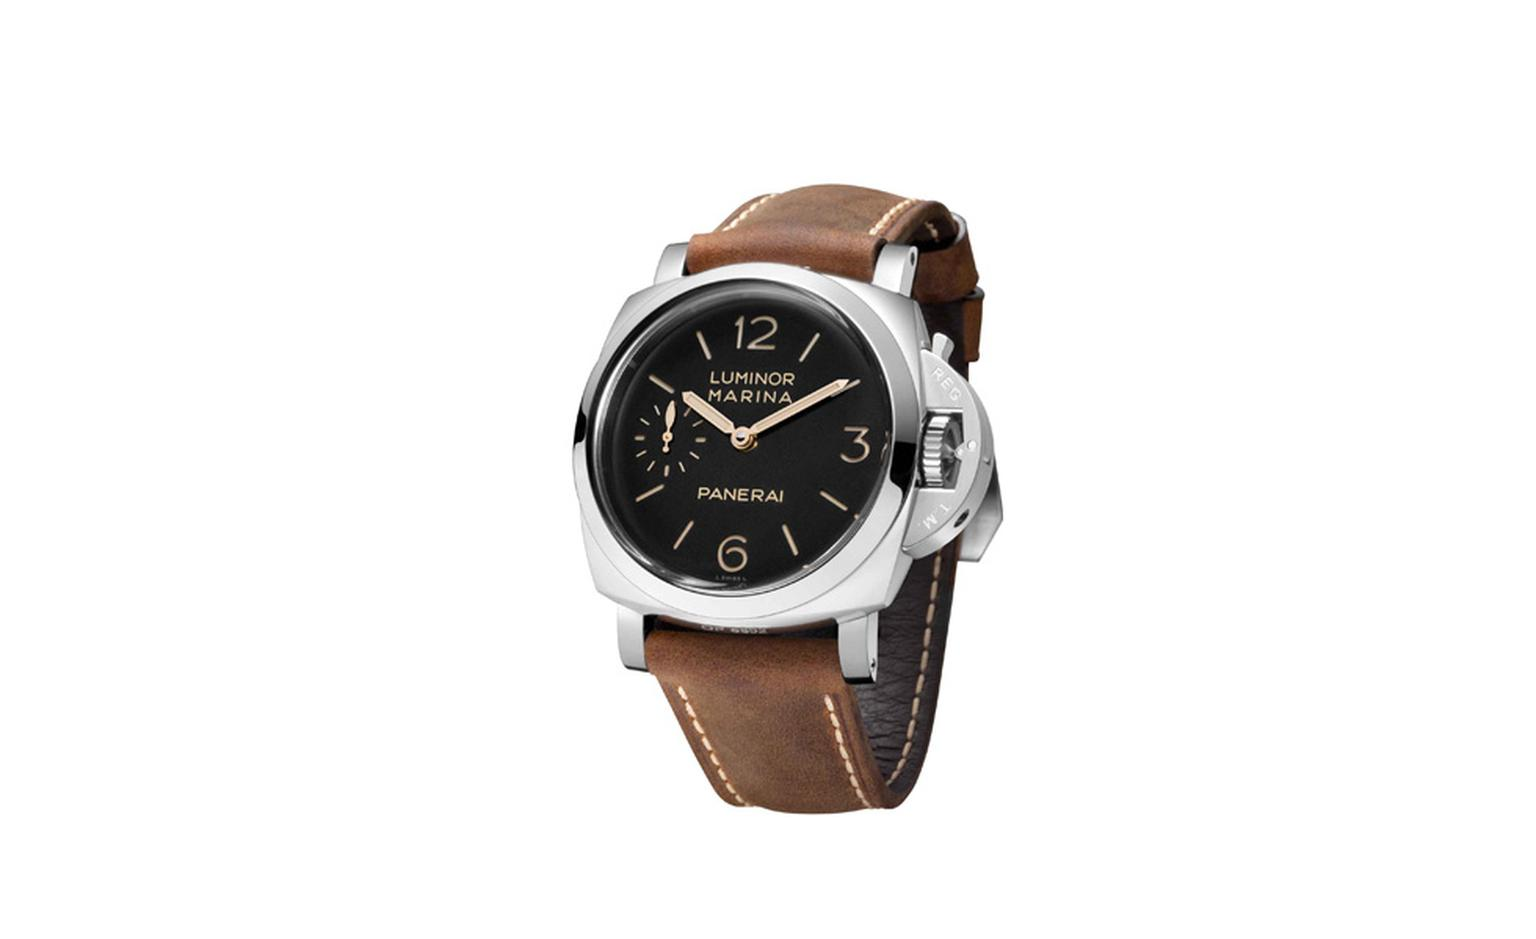 The Panerai PAM 422 Luminor Marina 1950 3 days was presented at the Milan exhibition featuring a retro look and the clean lines of Panerai's historic military instruments.